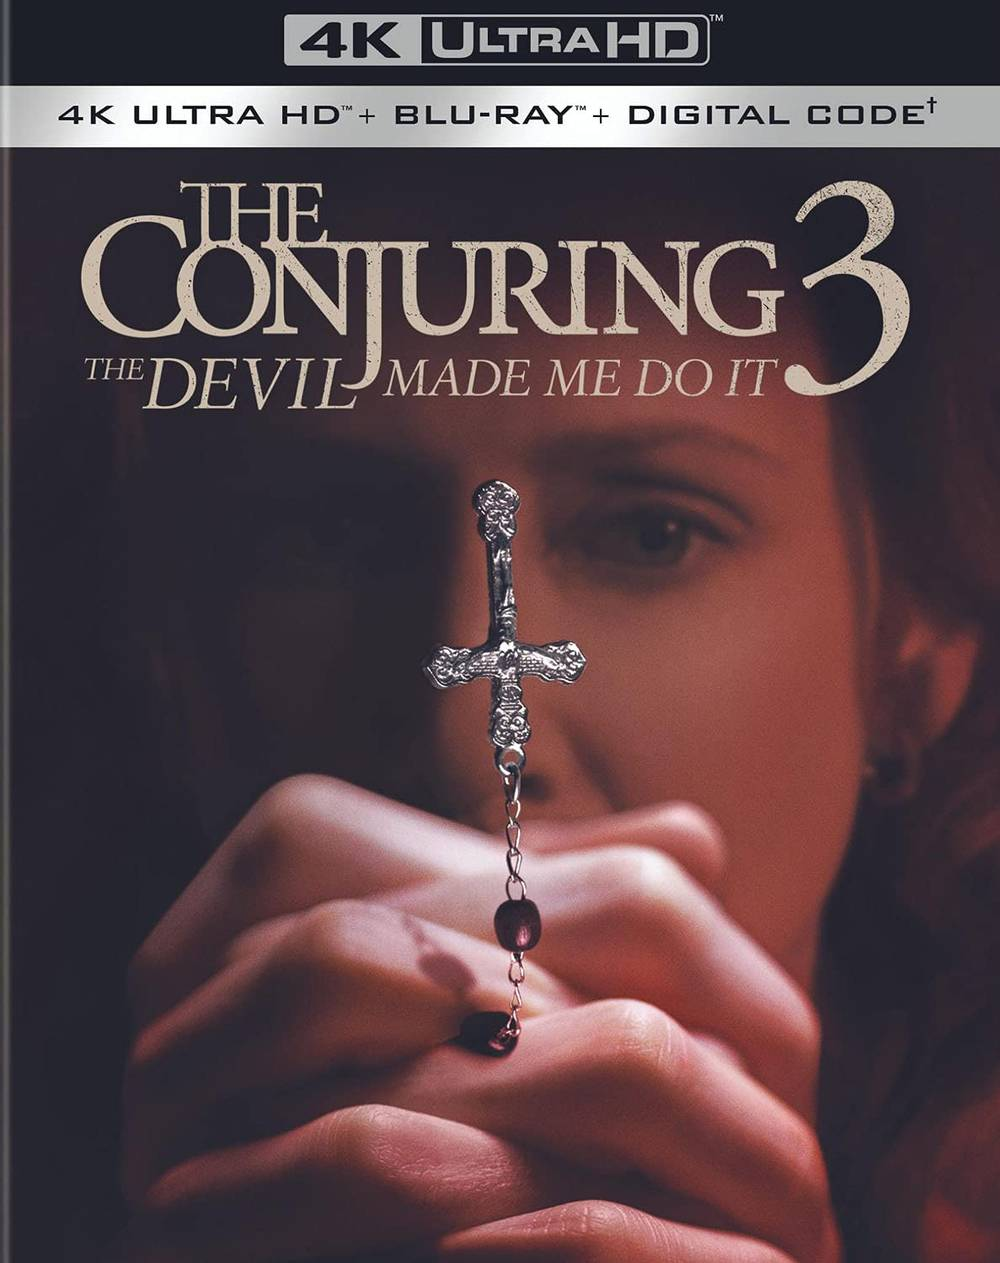 The Conjuring [Movie] - The Conjuring 3: The Devil Made Me Do It [4K]